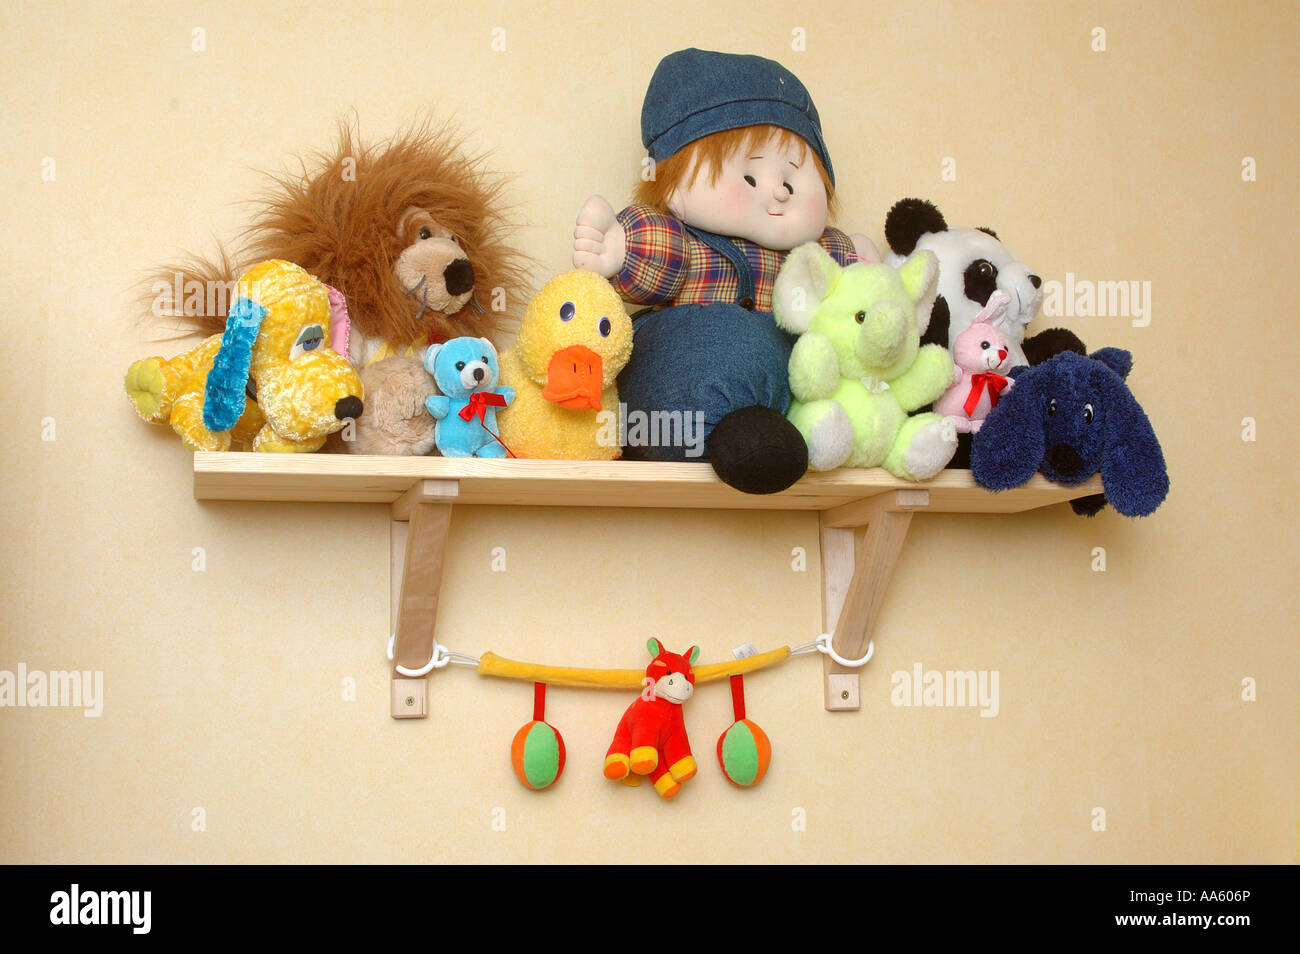 ANG104062 Soft toys kept on the shelf in the childs bed room - Stock Image